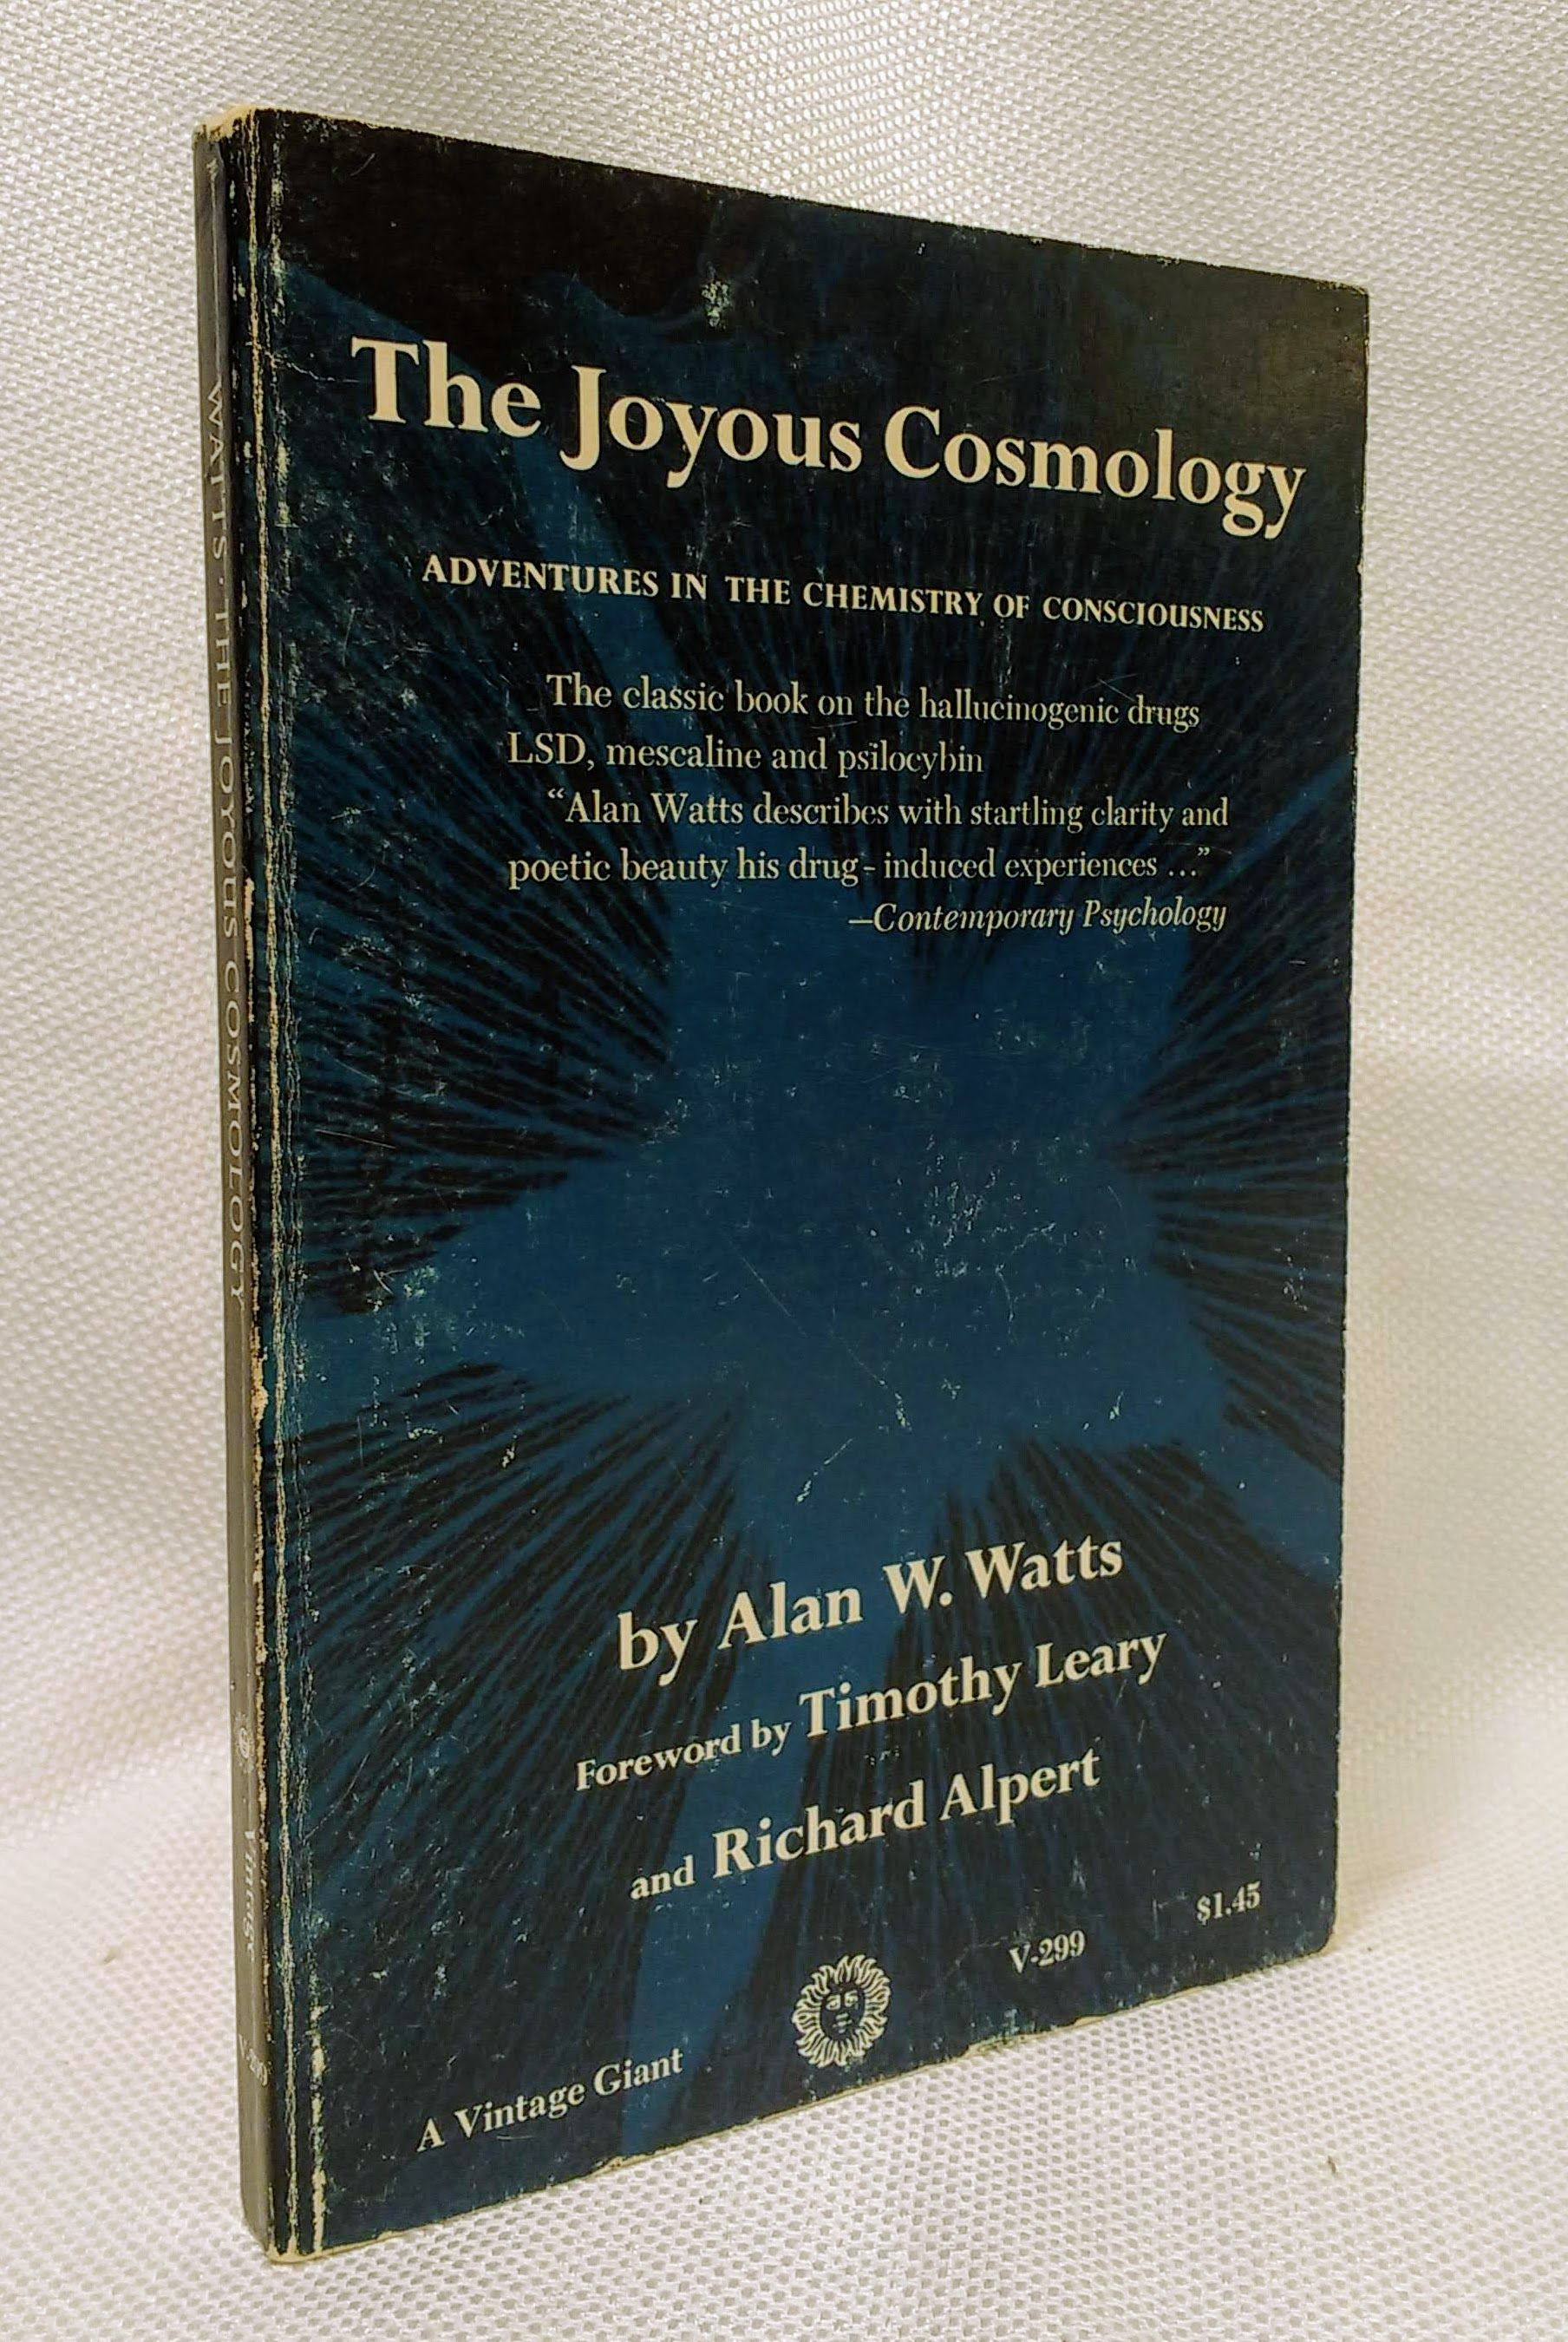 The Joyous Cosmology: Adventures in the Chemistry of Consciousness, Alan Watts